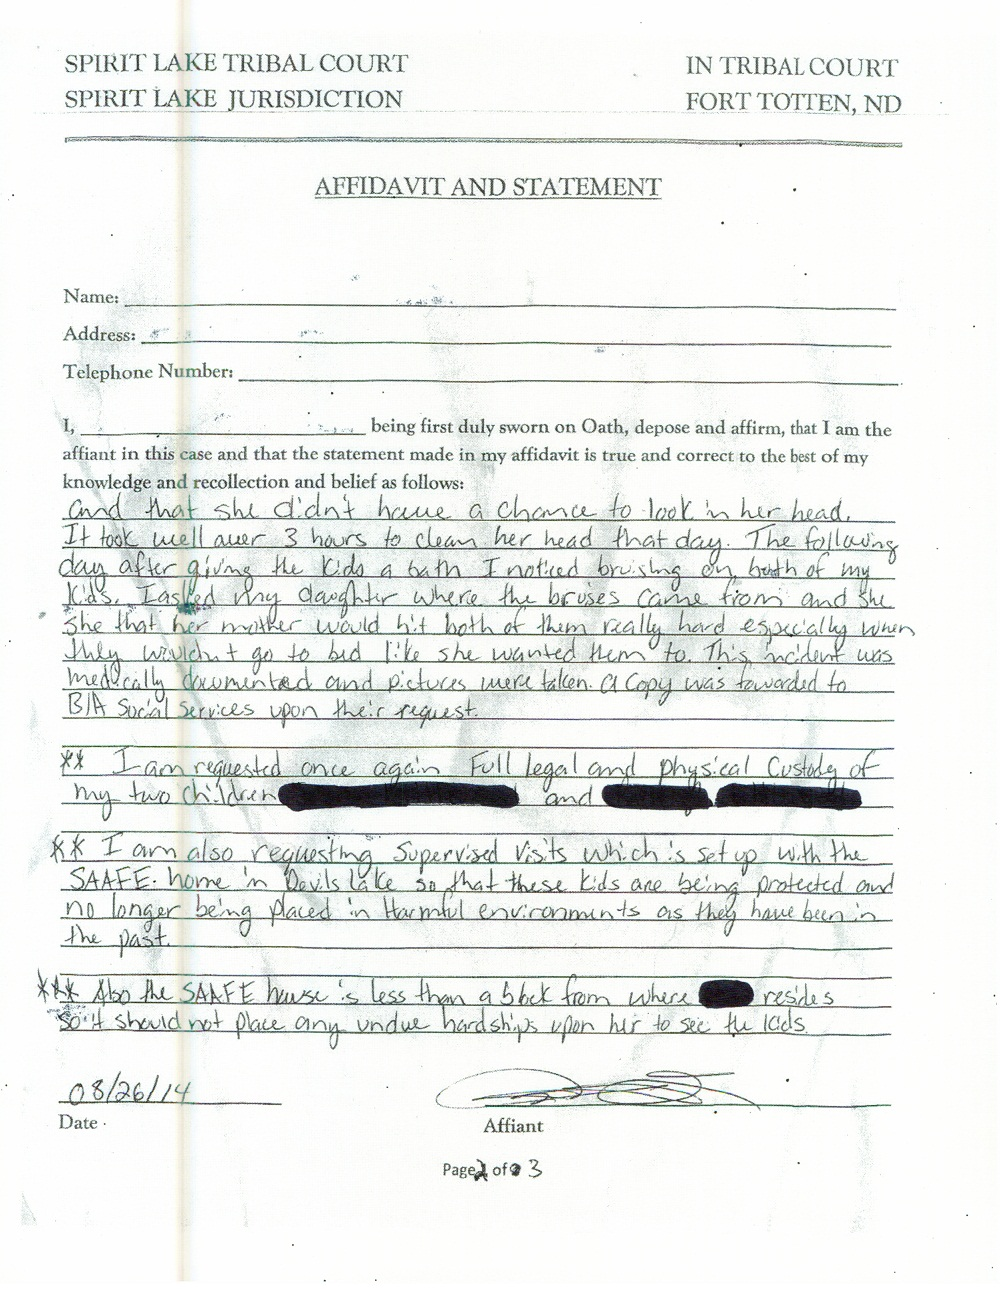 Bundy's August 27 Statement - page 2 of 3